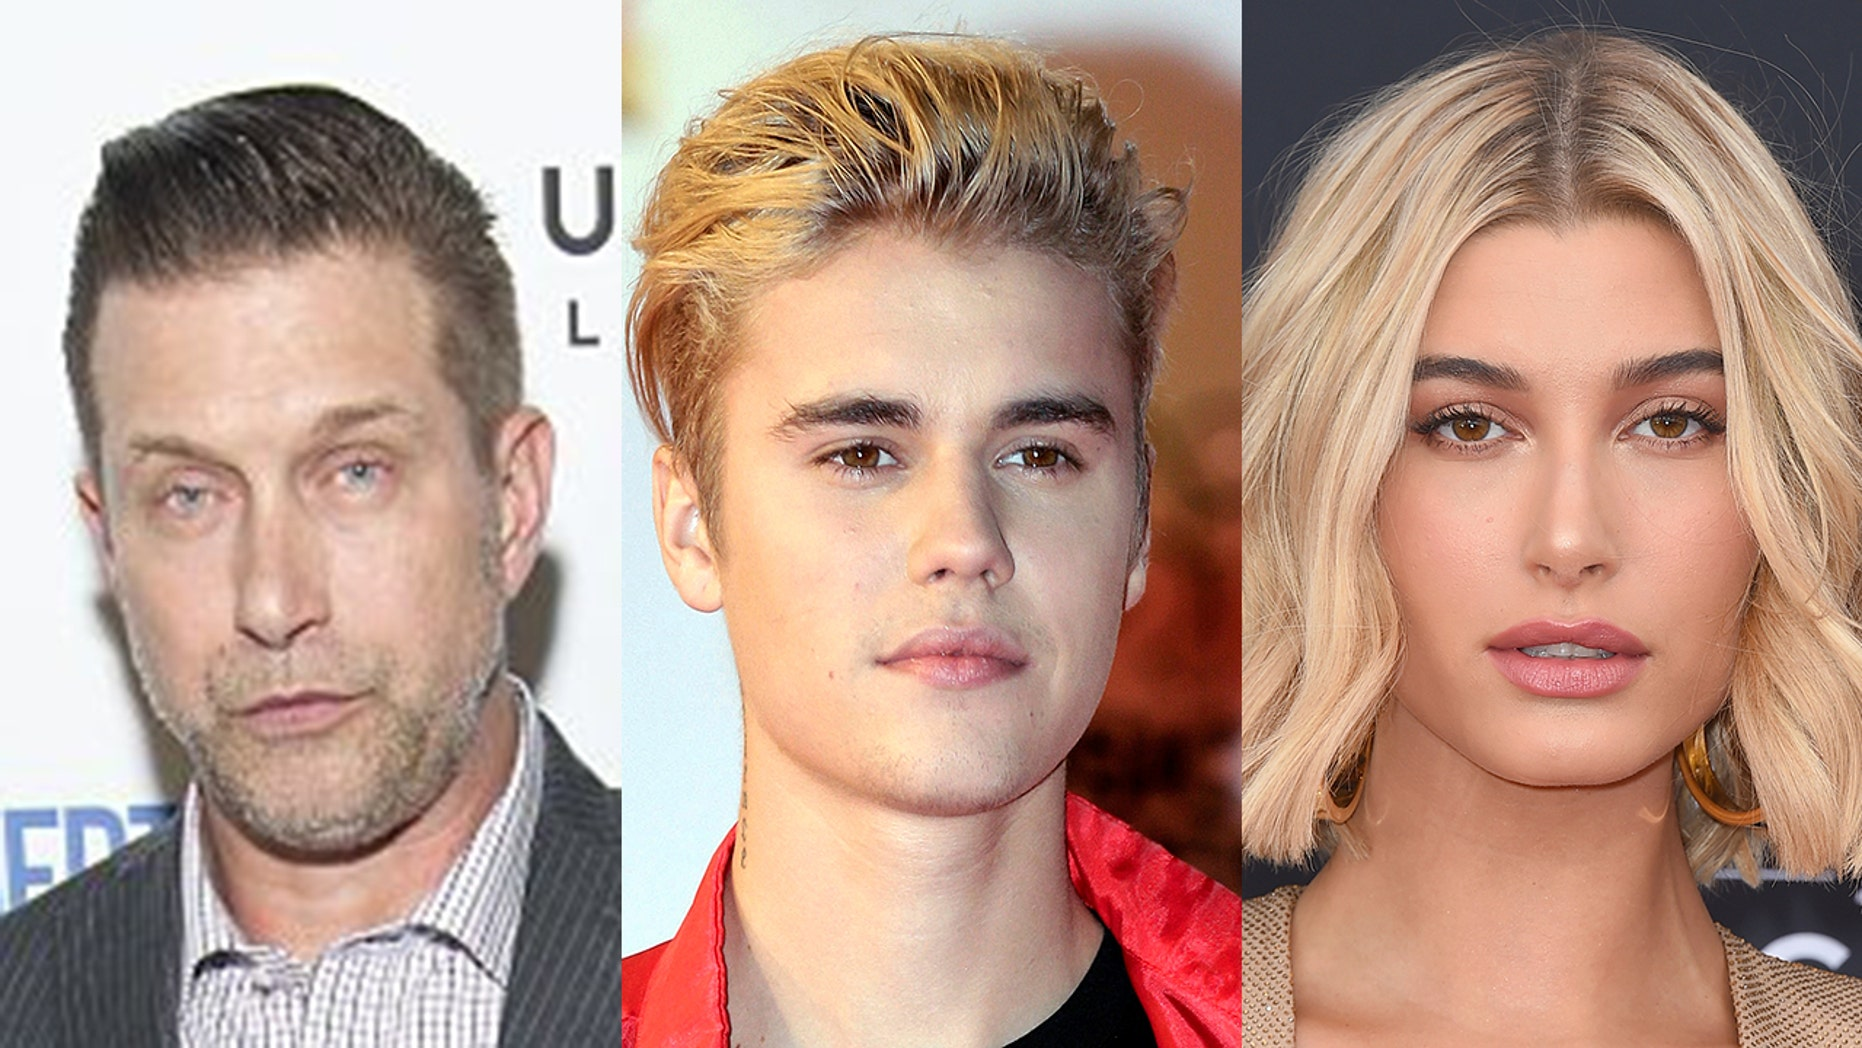 Justin Bieber reportedly took a traditional approach by asking Stephen Baldwin's permission before proposing to Hailey Baldwin.